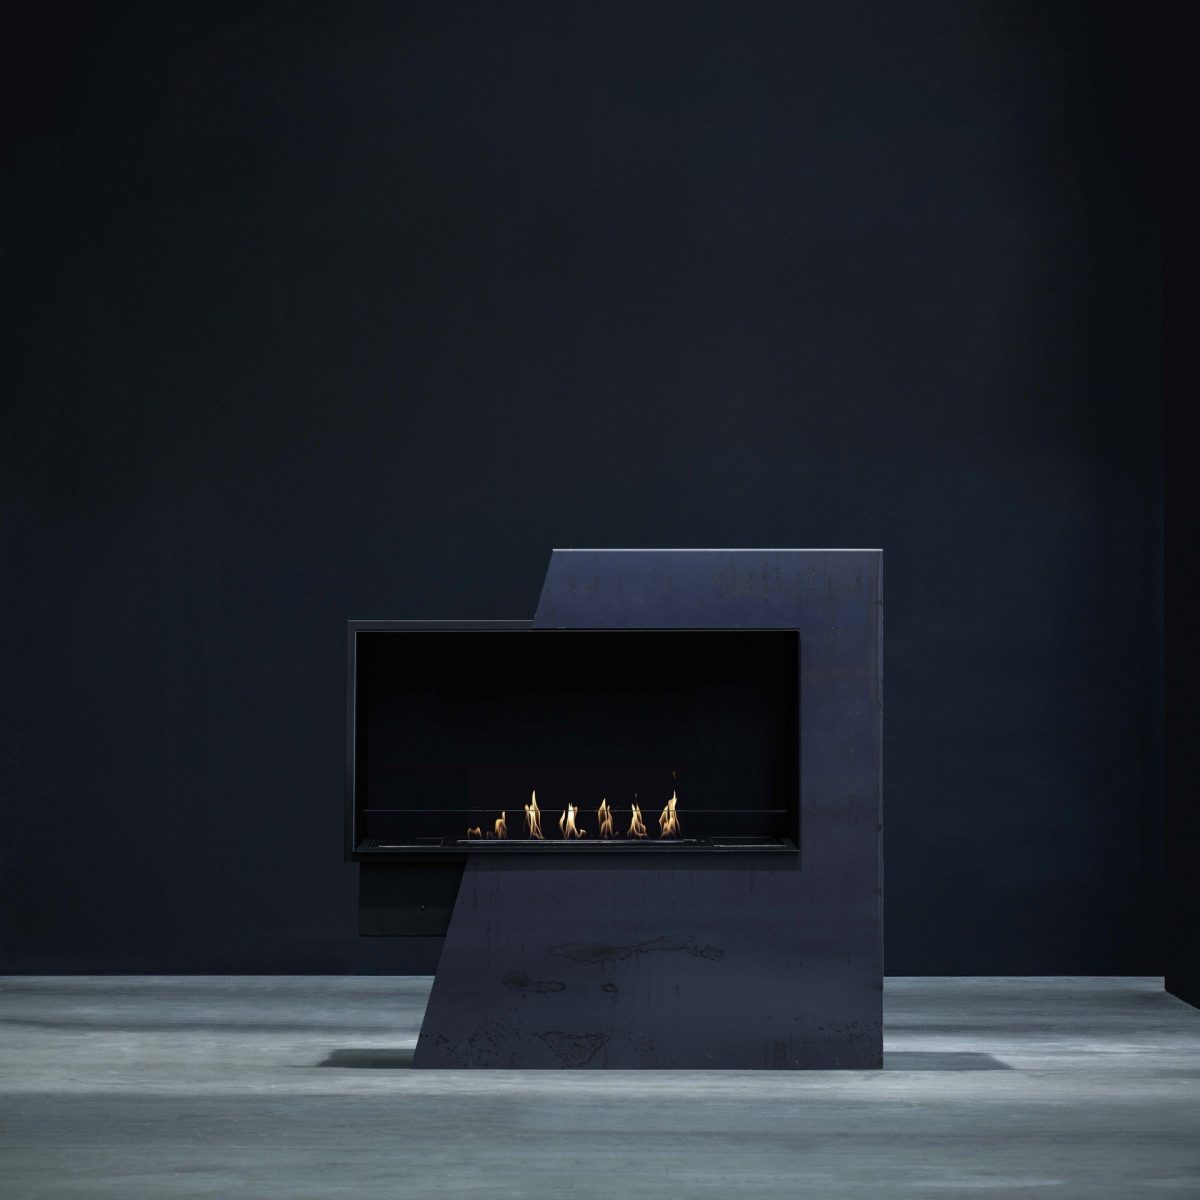 xglammfire_fireplace_glammbox_hd_008-1920×1920.jpg.pagespeed.ic.U_LRQ3tP-b